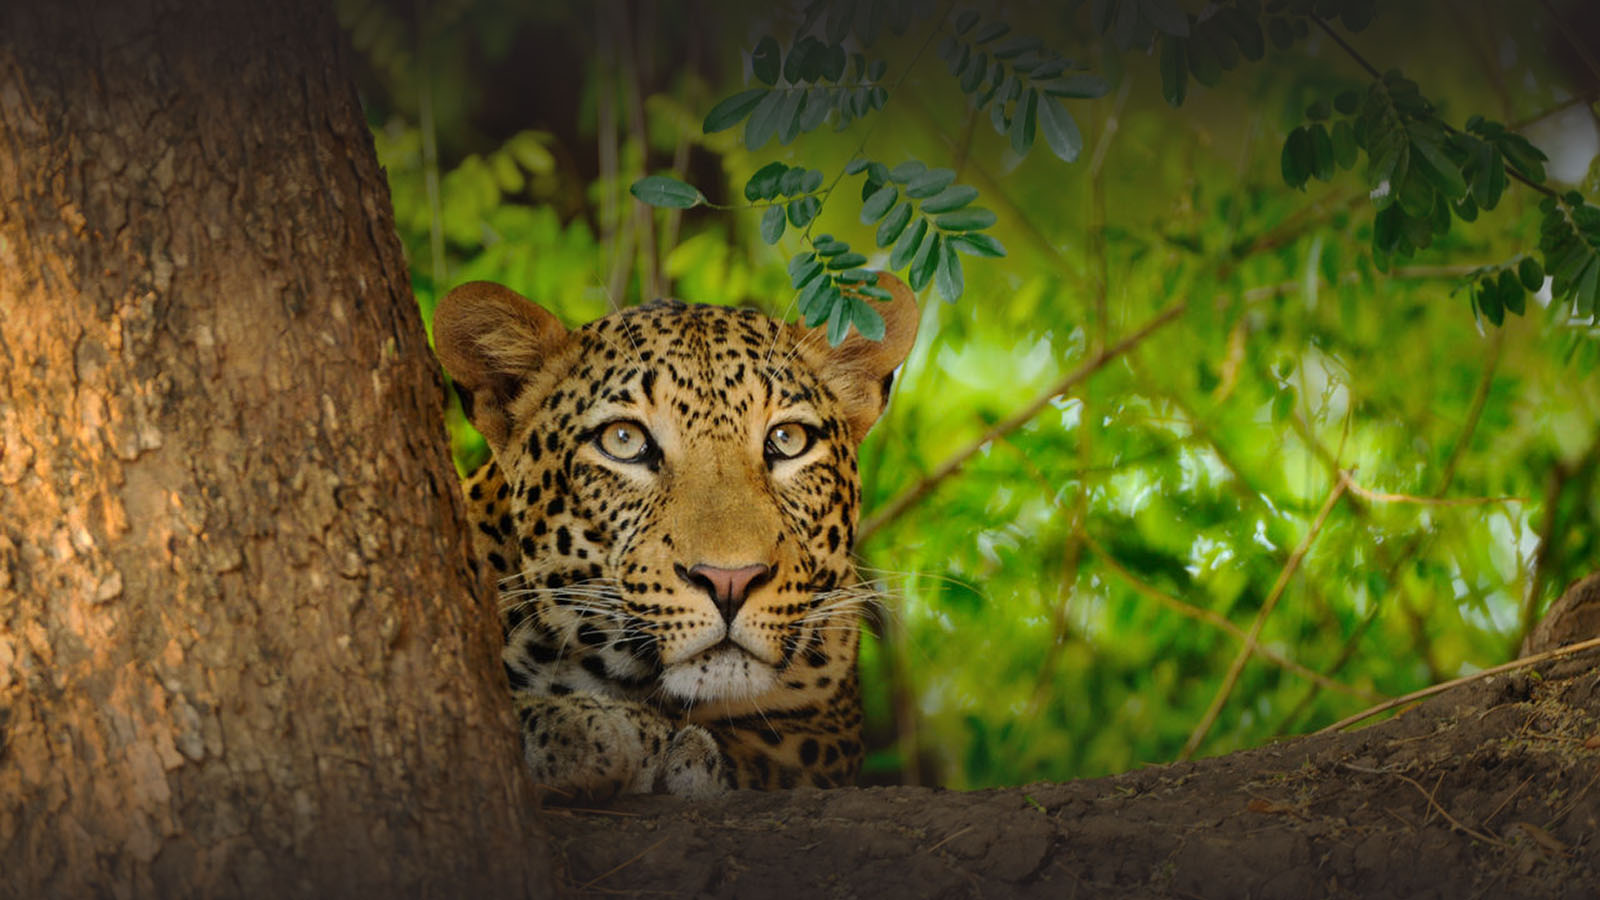 the royal zambezi zambia-in-style-safari-packages-lodges-lower-zambezi-leopard-wildlife